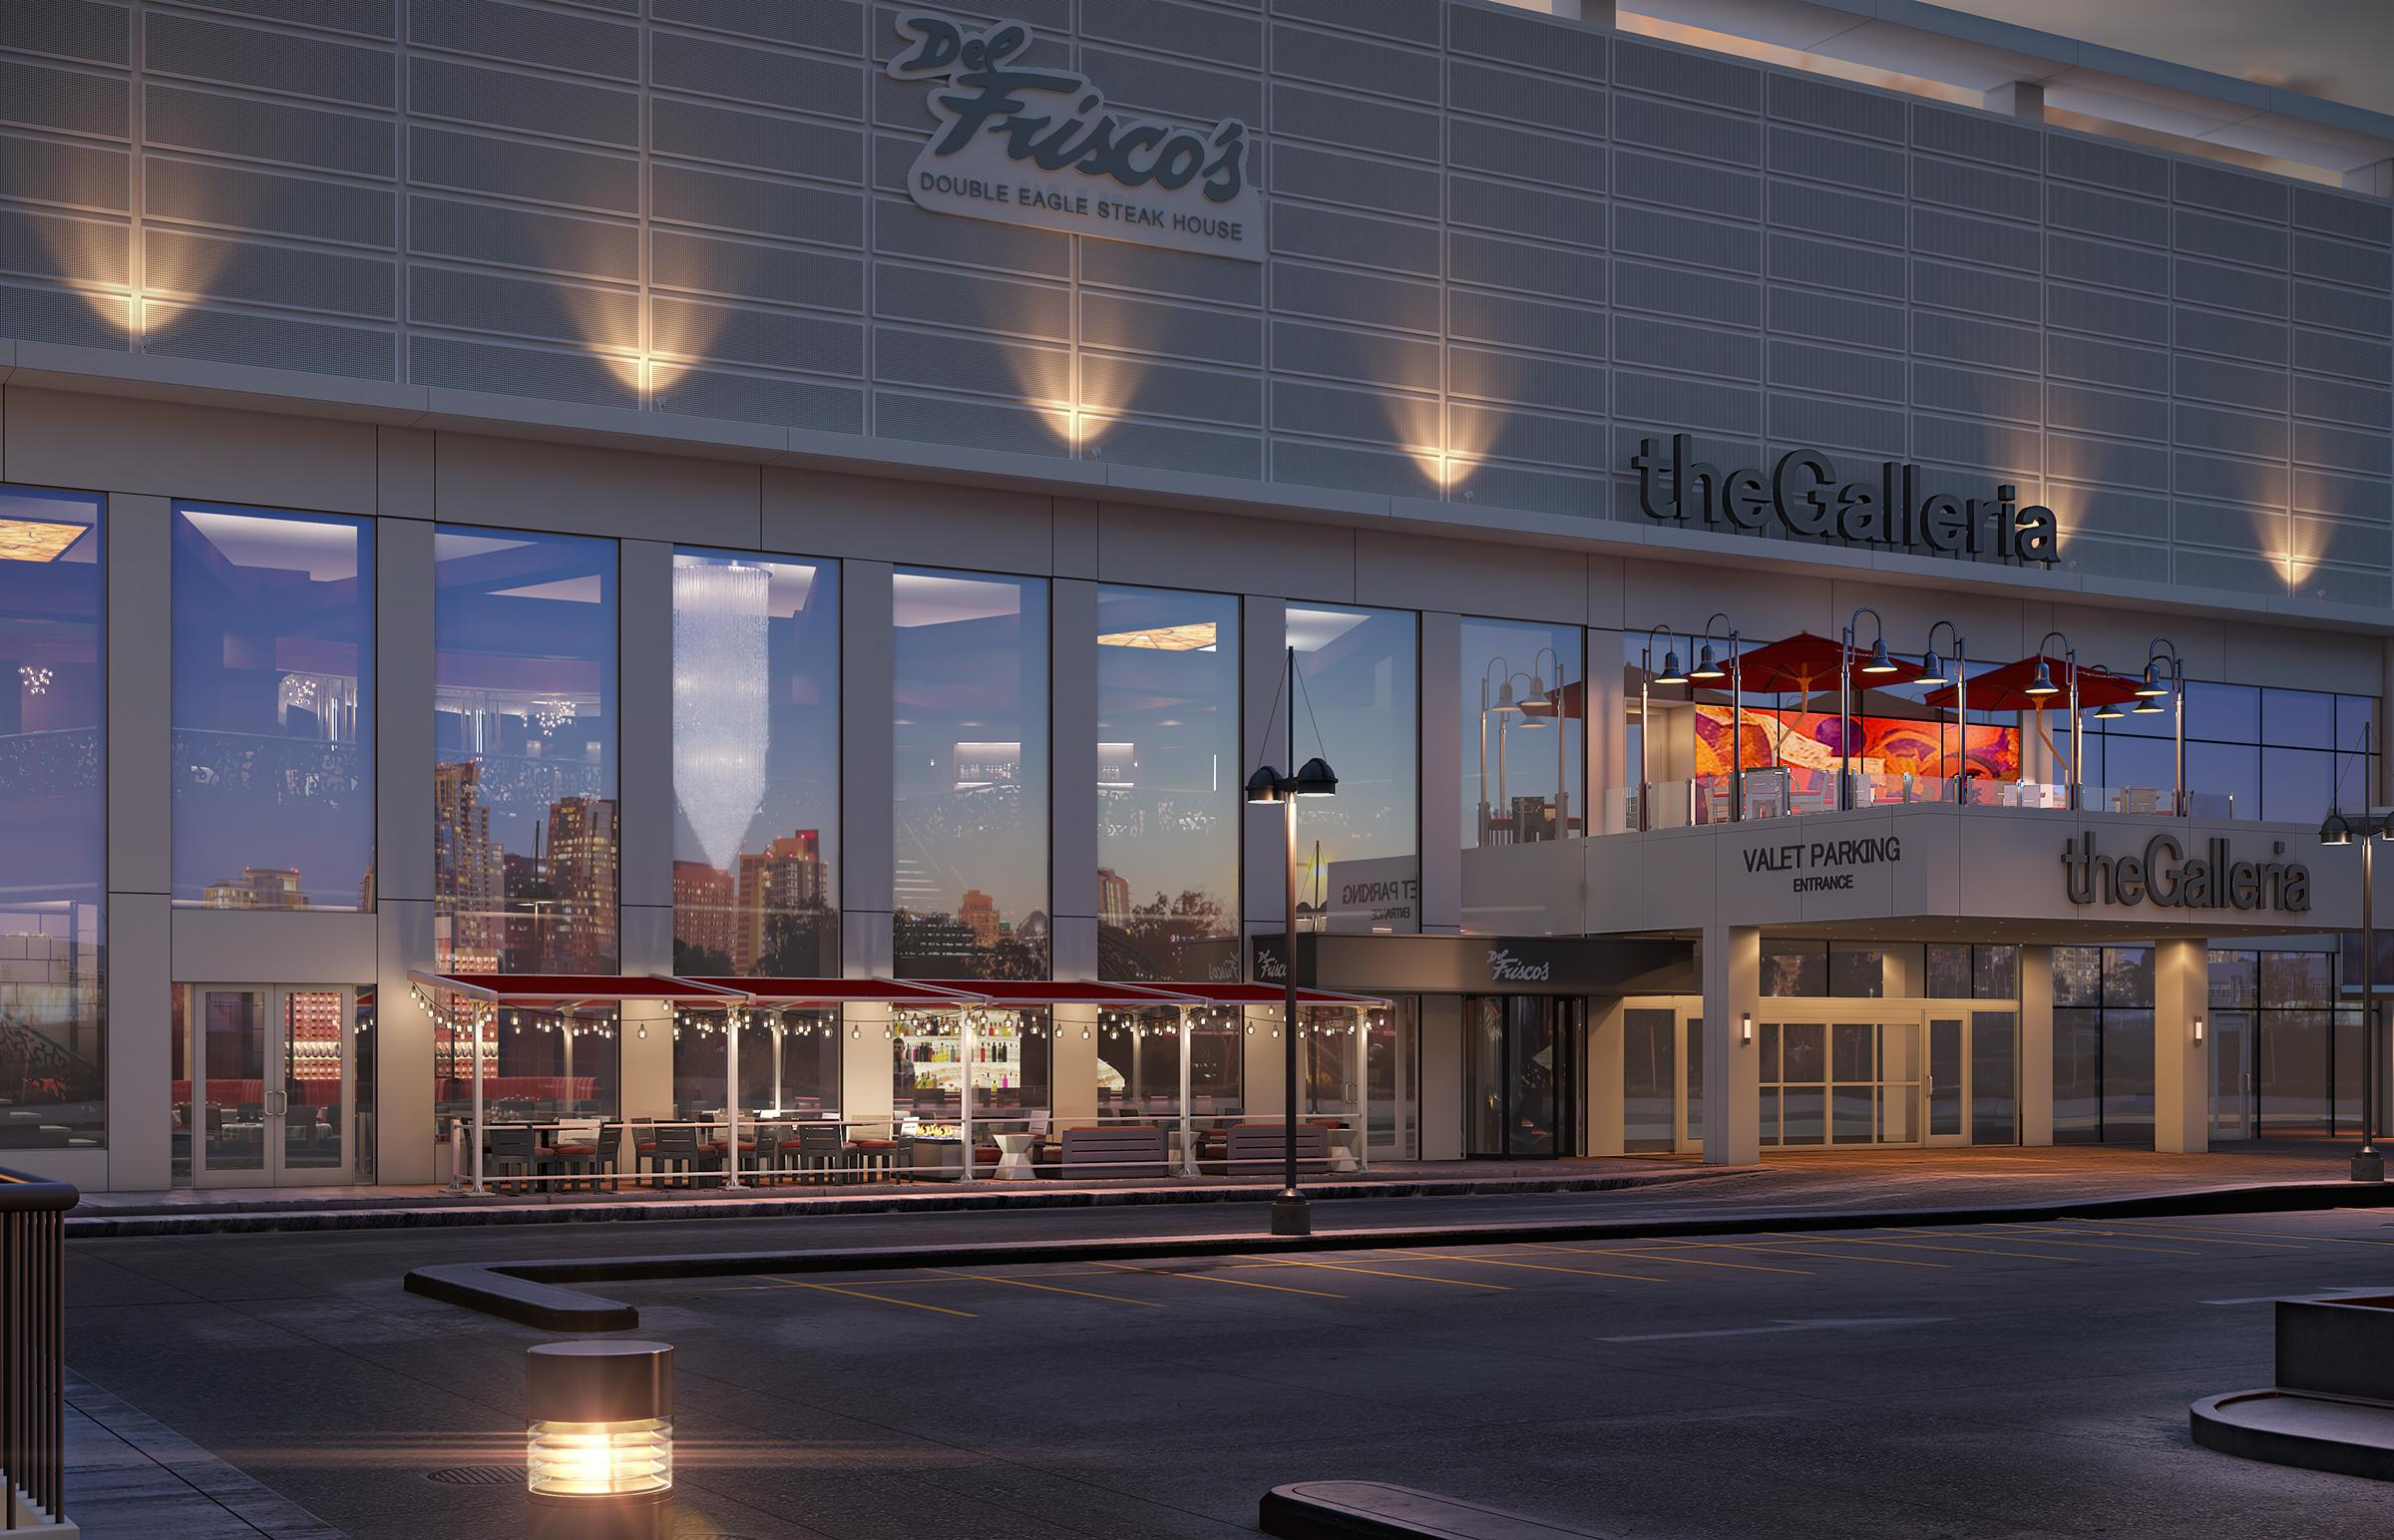 Del Frisco's renovation